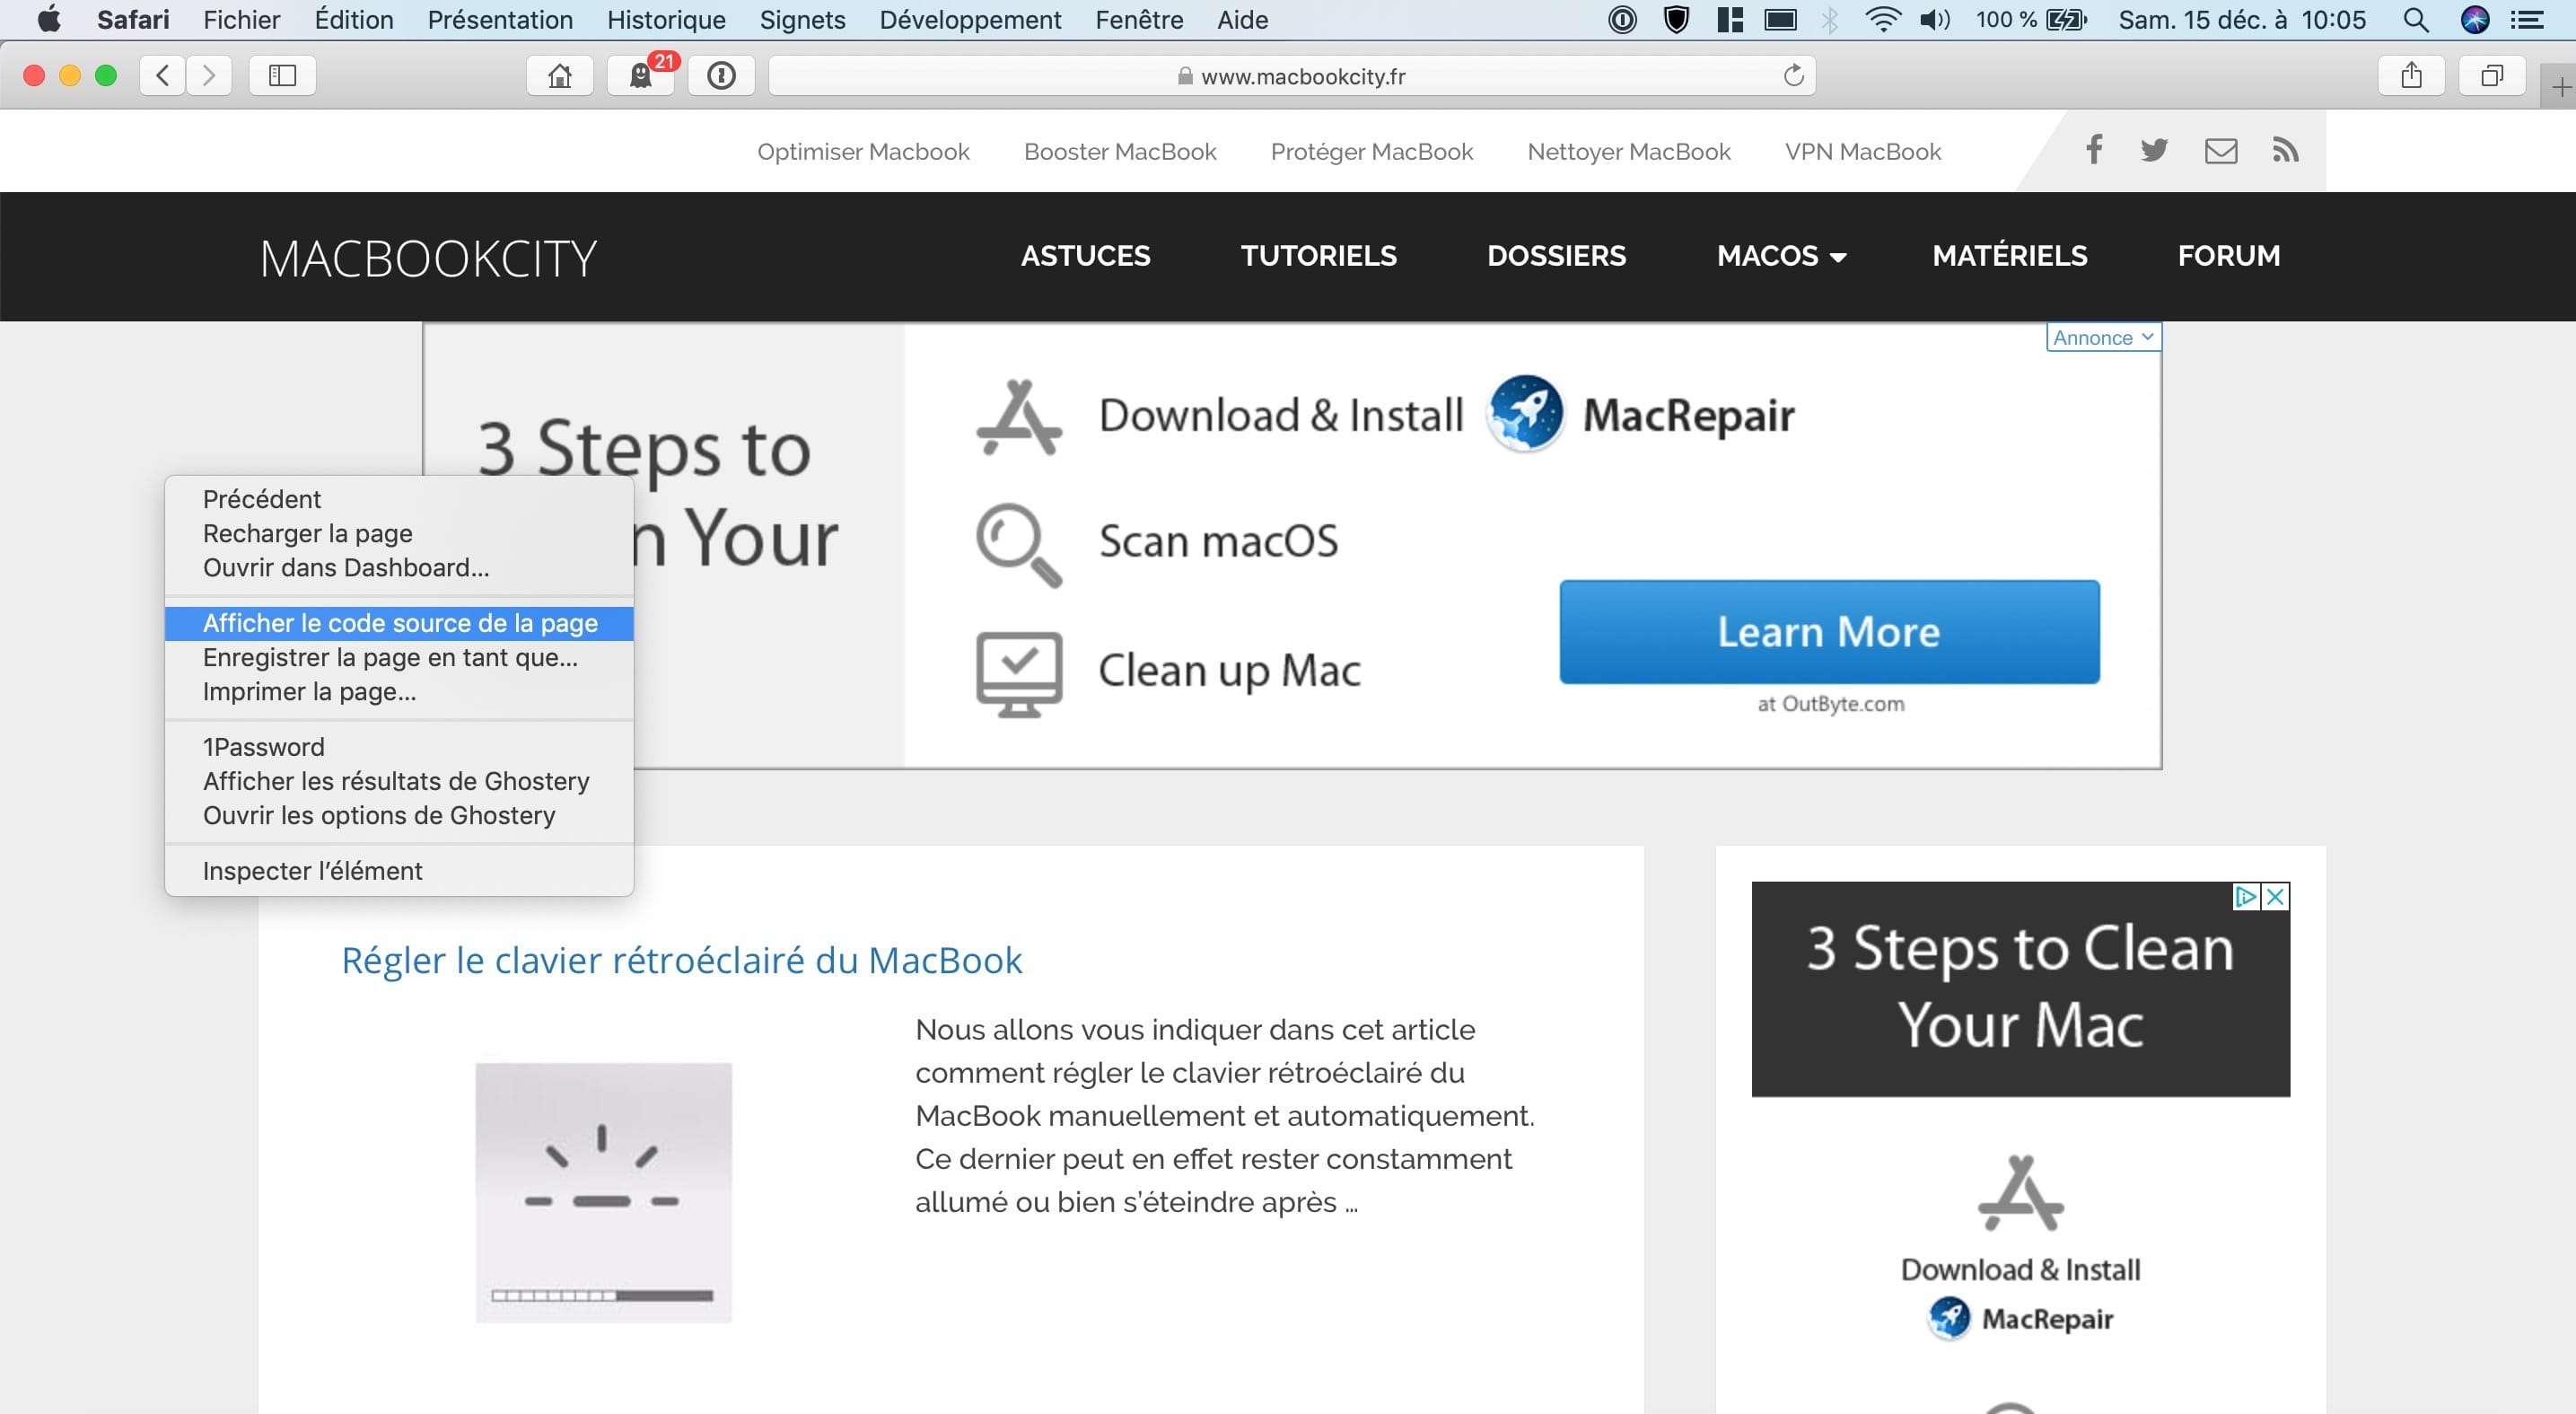 How to view a page HTML source code in Safari on Mac